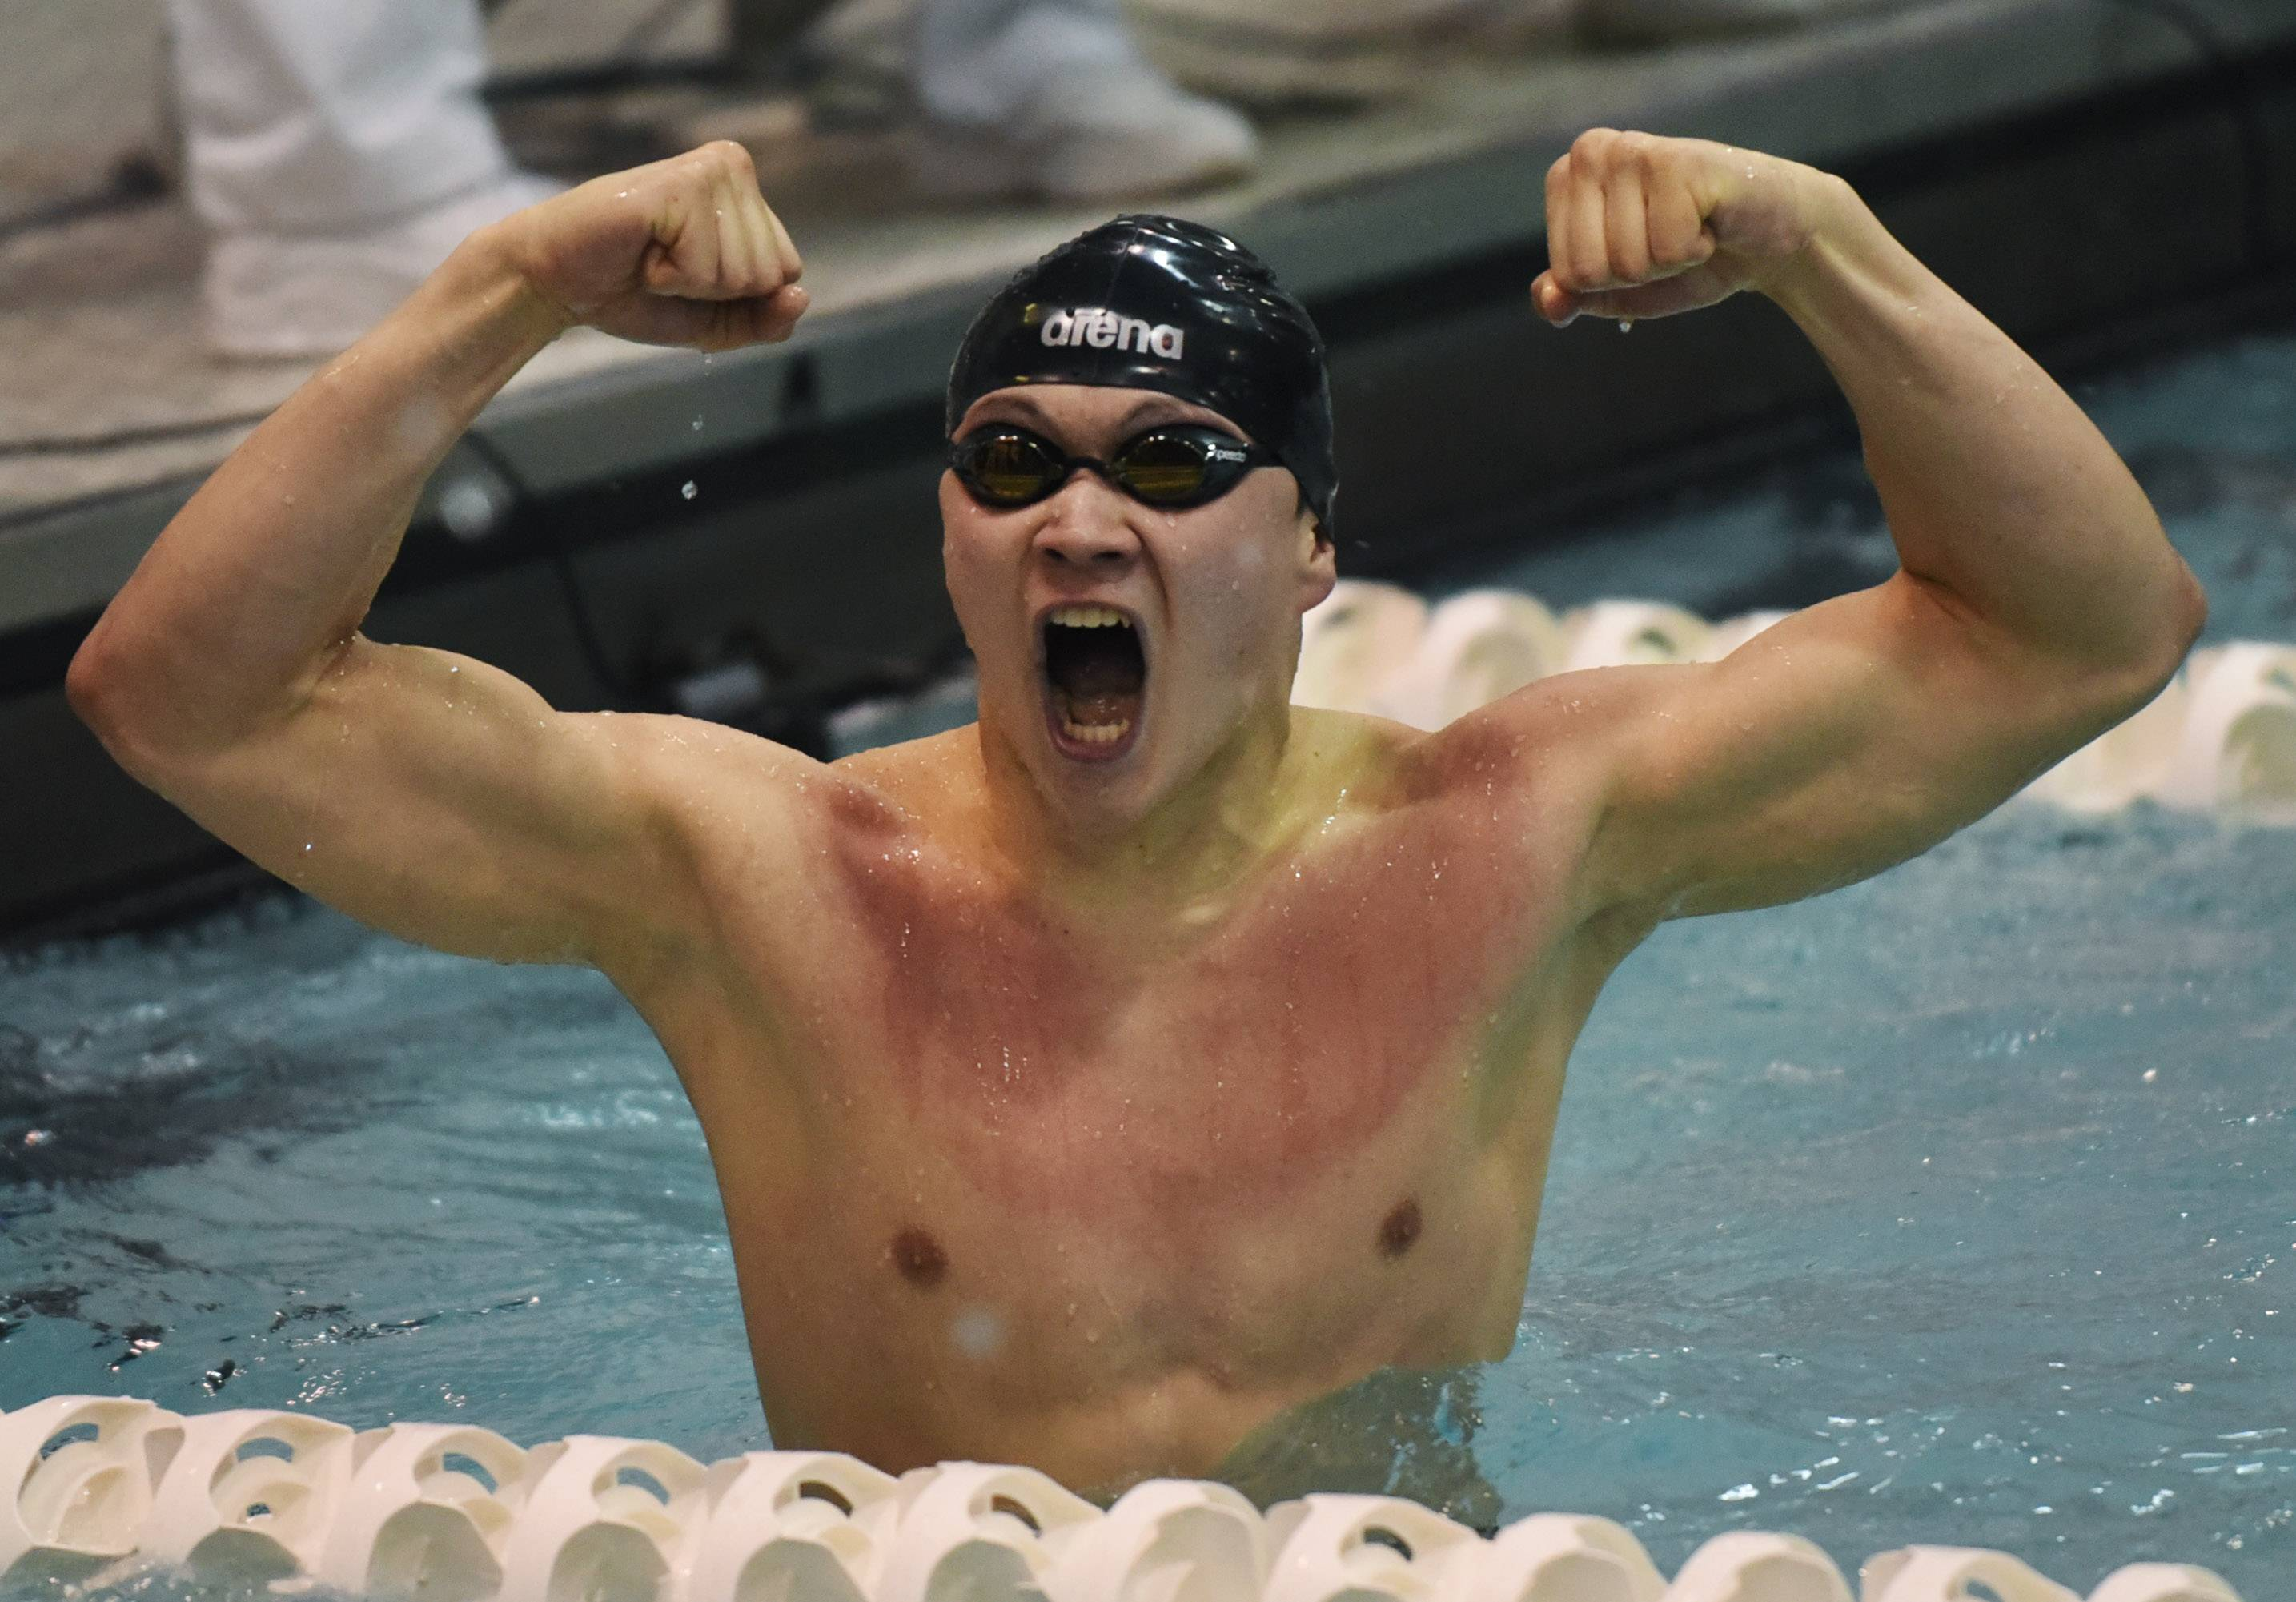 Glenbrook South's Sam Iida celebrates after breaking his own state record in the 200-yard individual medley with a time of 1:46.02 during the boys swimming state finals at New Trier High School in Winnetka Saturday.